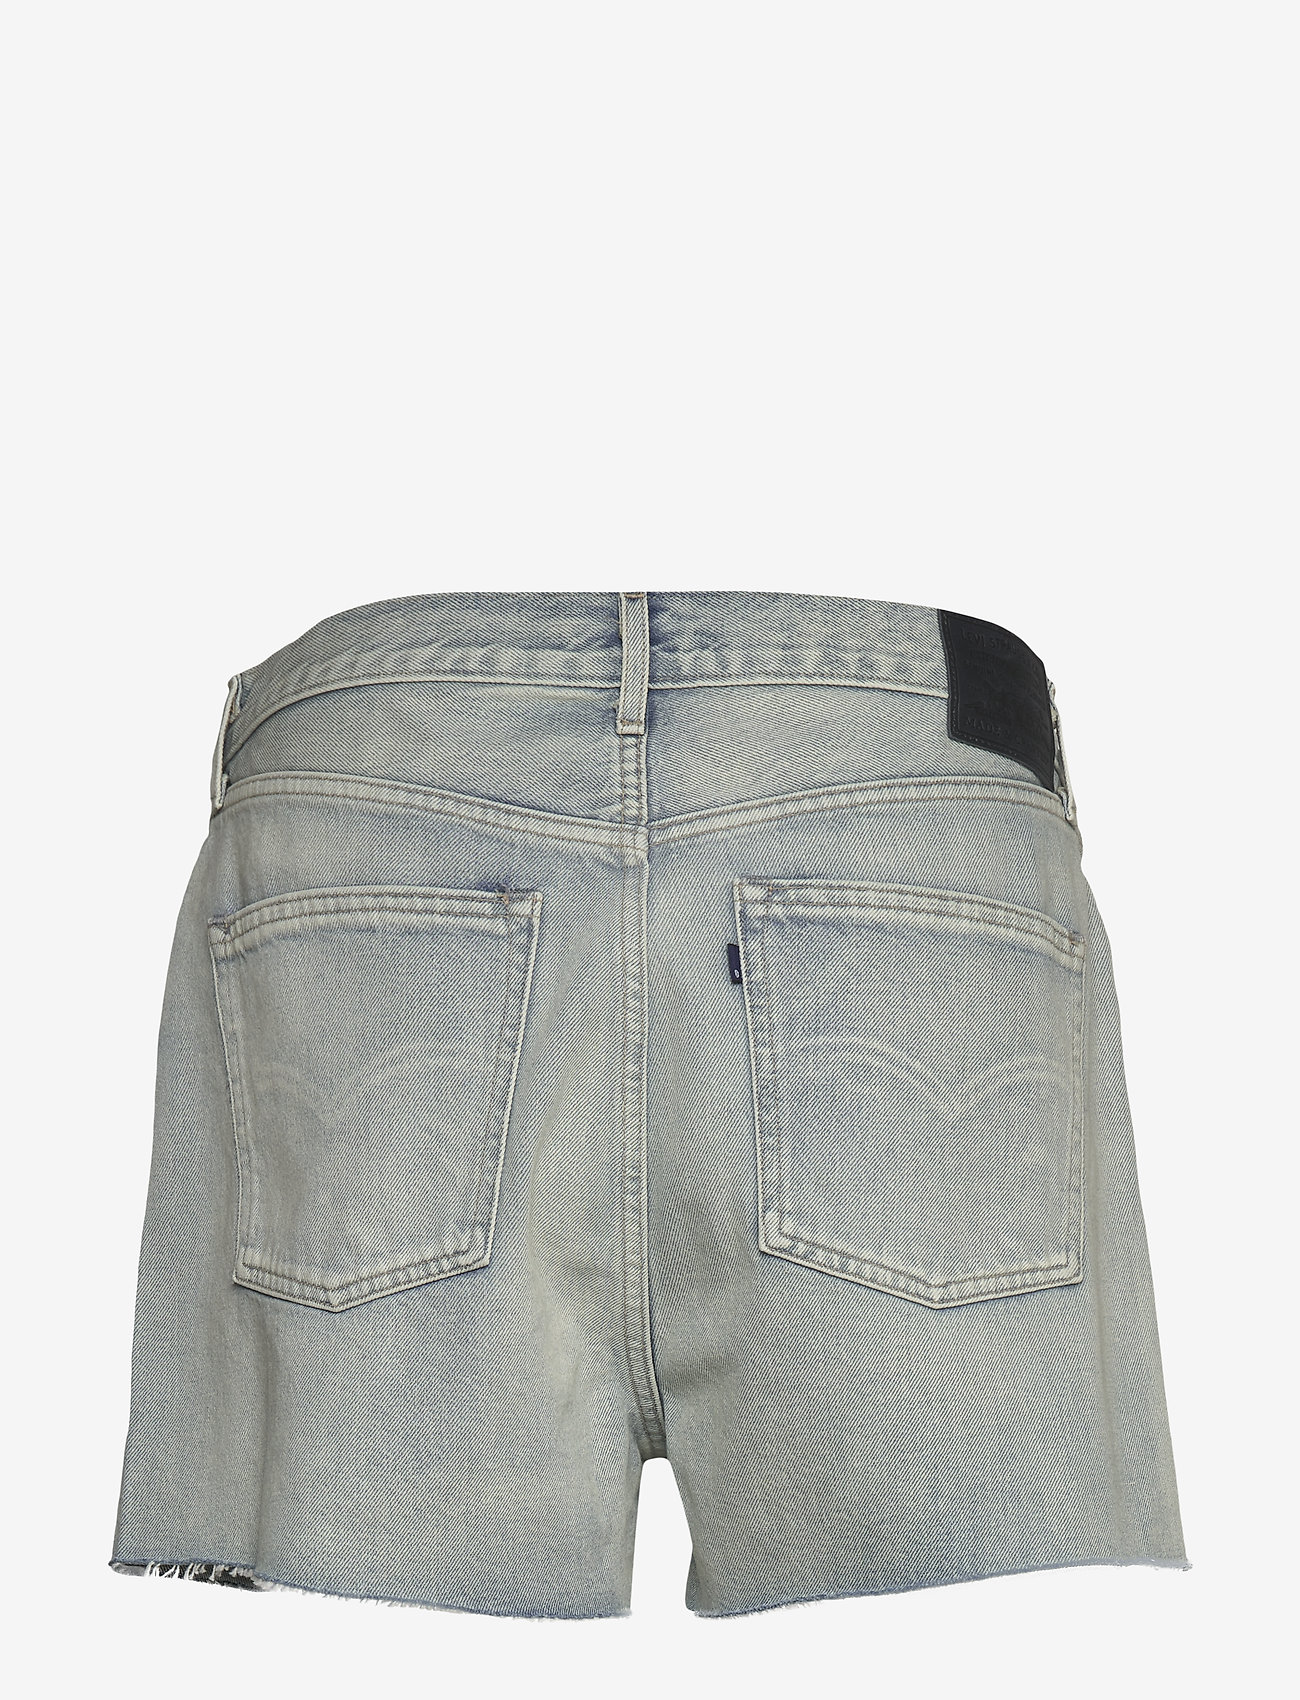 Levi's Made & Crafted Lmc Cinched Tab Short Leis - Shorts